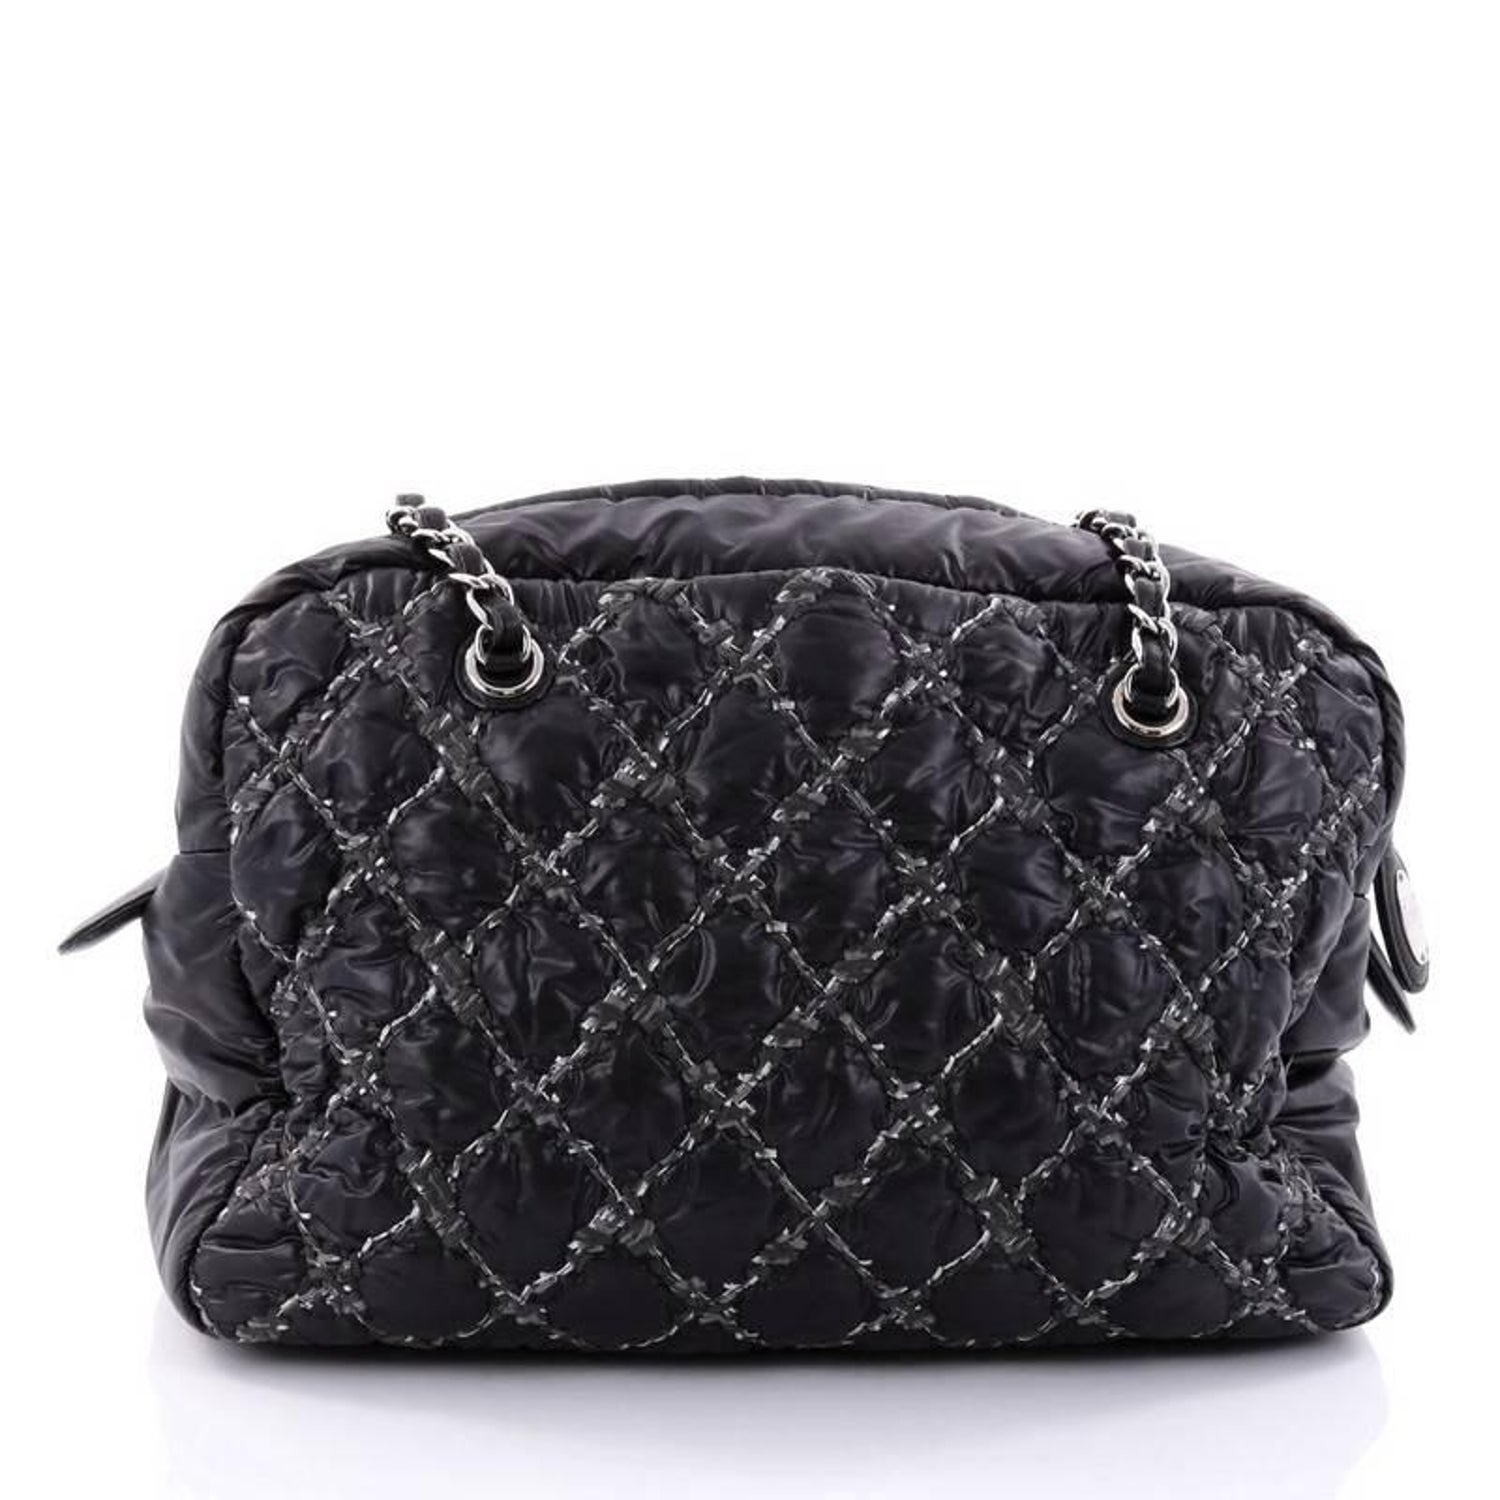 cb73c8abf88a Chanel Tweed On Stitch Camera Case Bag Quilted Nylon Medium at 1stdibs